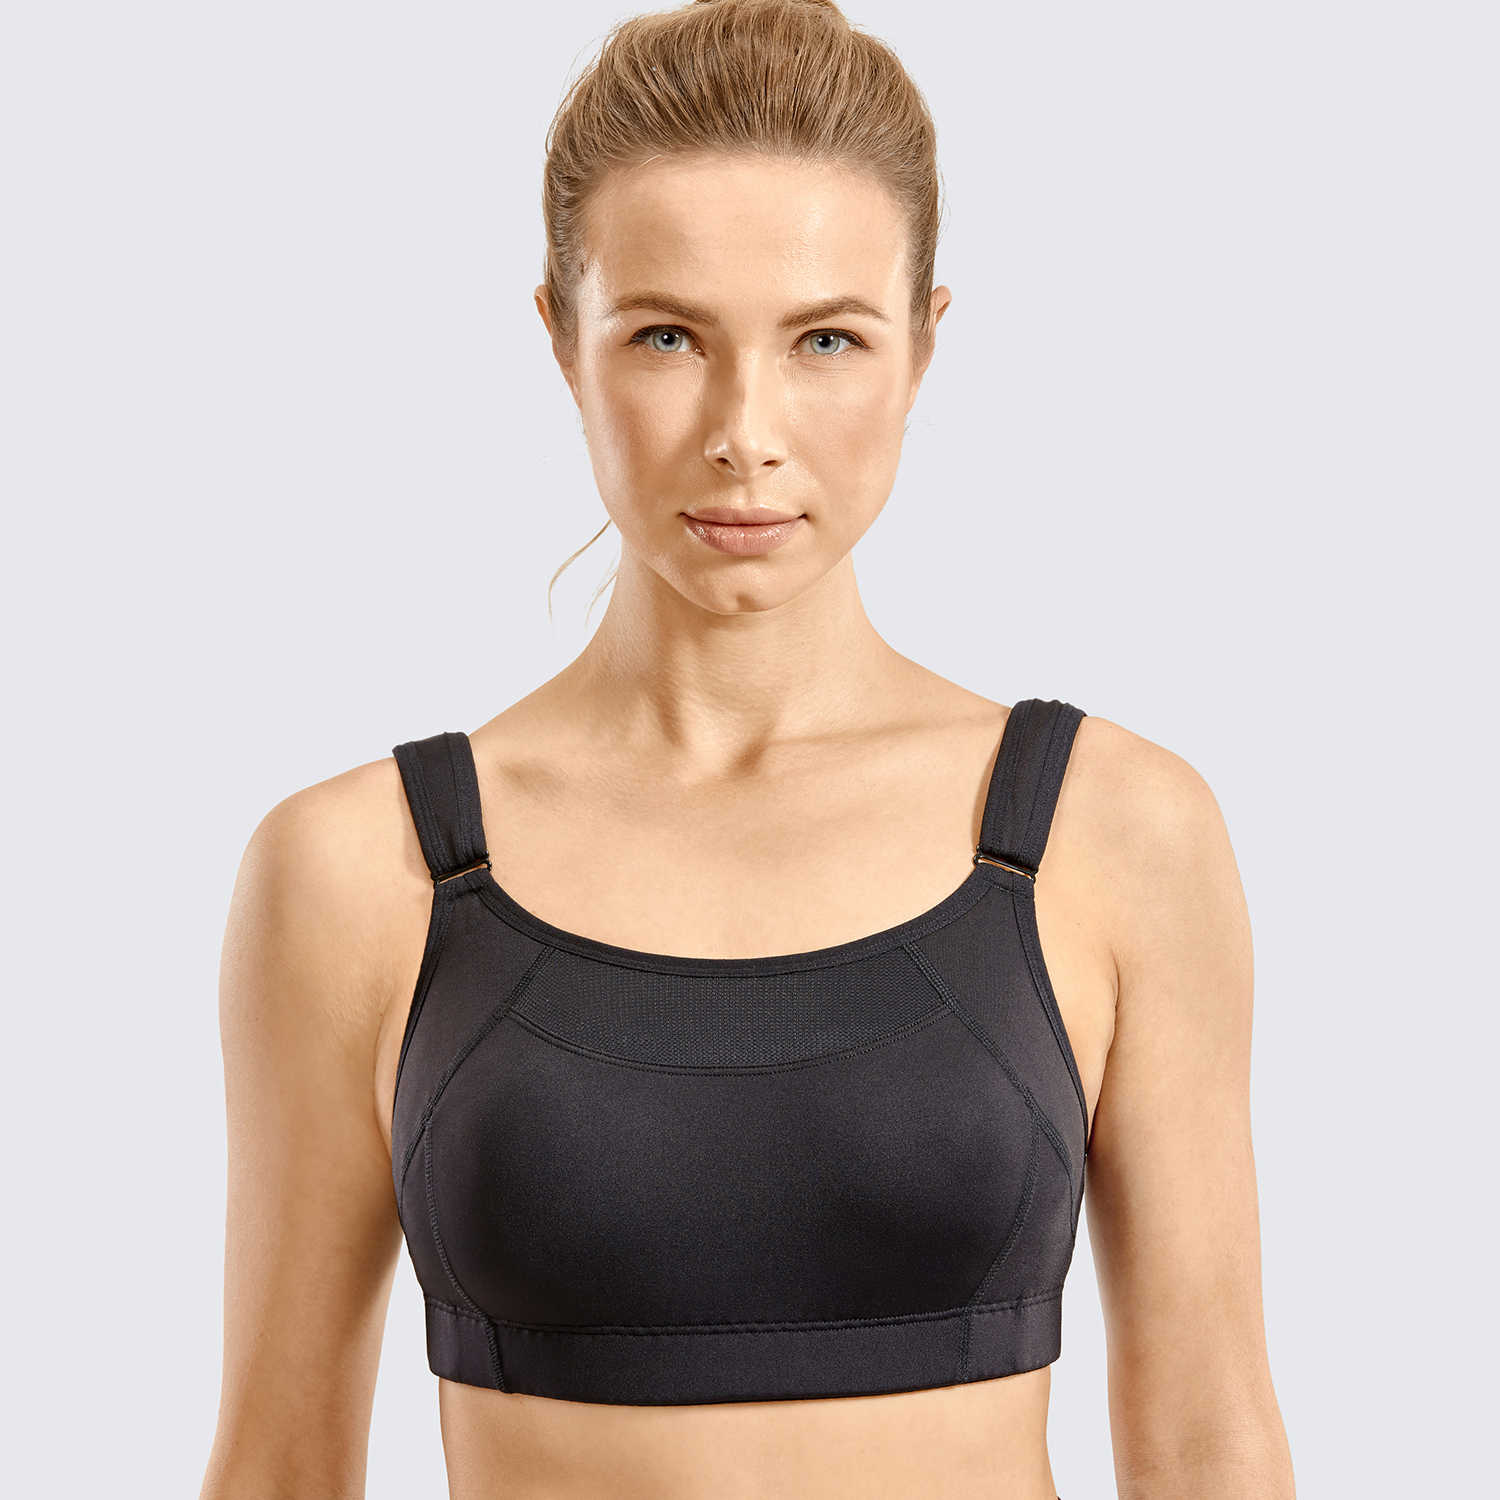 SYROKAN Womens Bounce Control Wirefree High Impact Maximum Support Sports Bra